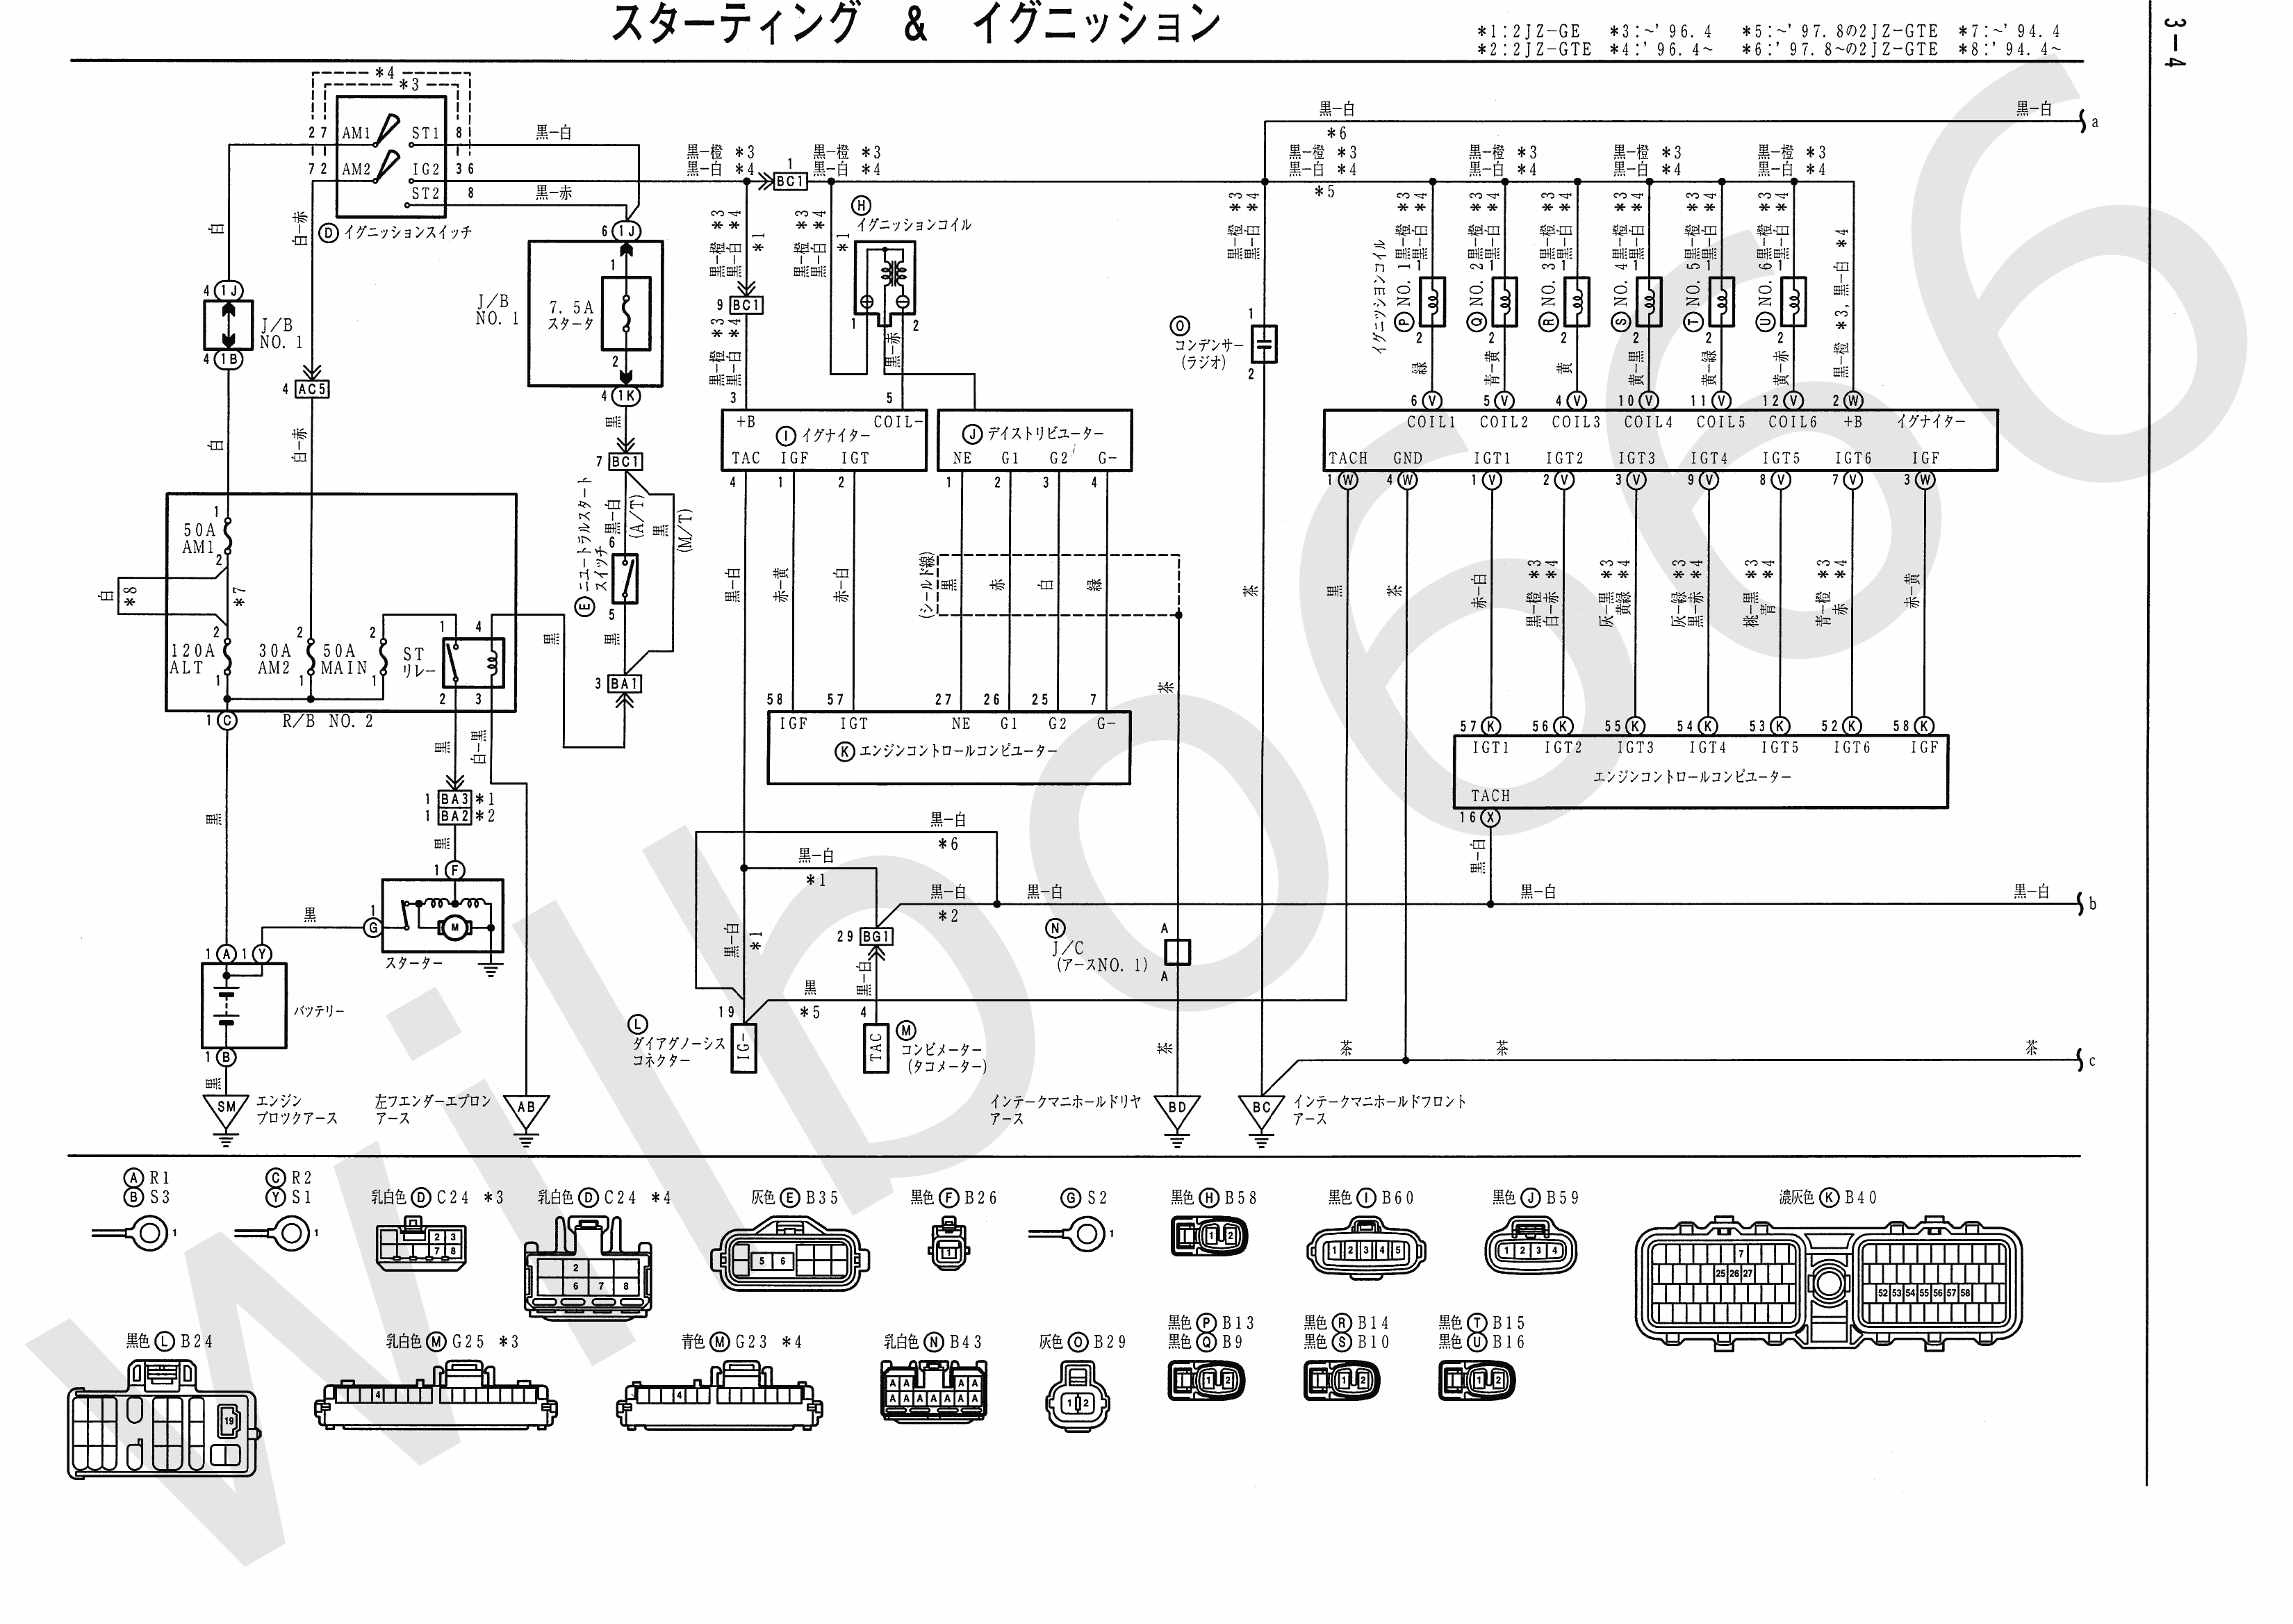 Spark Plug Wiring Diagram For Rav4 Electrical Chevrolet Toyota Stereo Library Rh 35 Skriptoase De Chevy 289